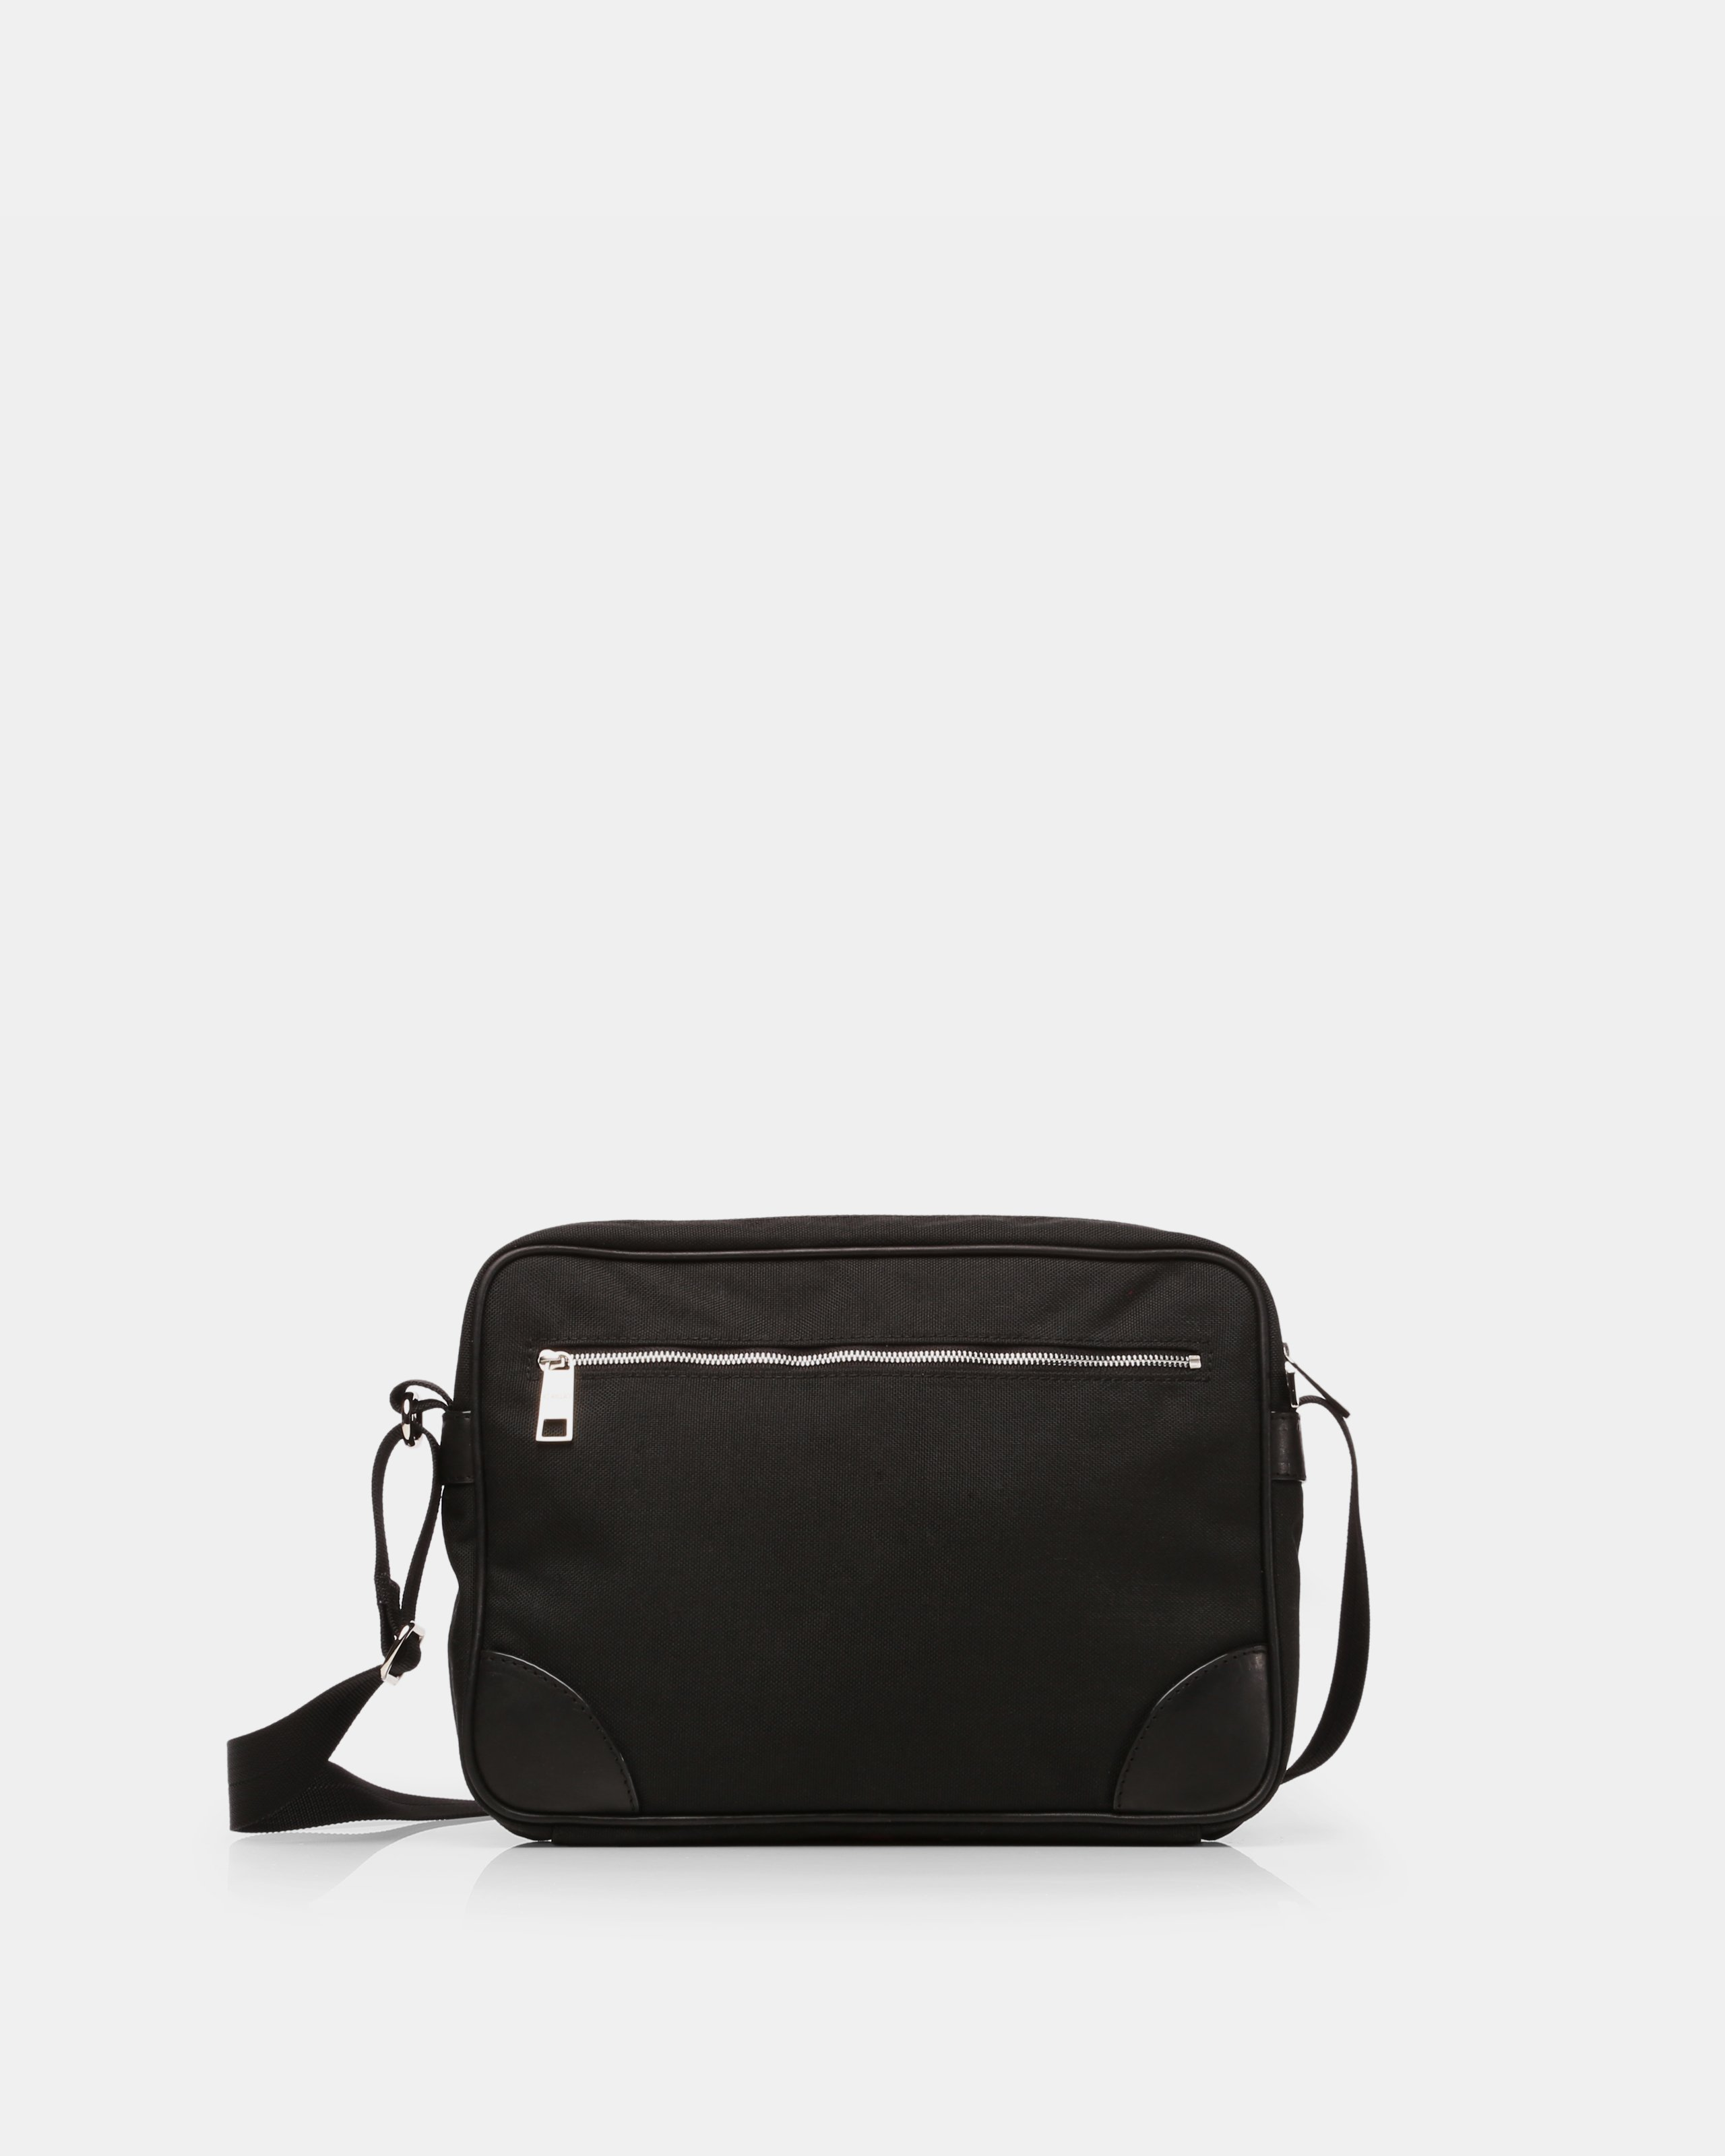 Black Cordura Elgort (8171078) in color Black